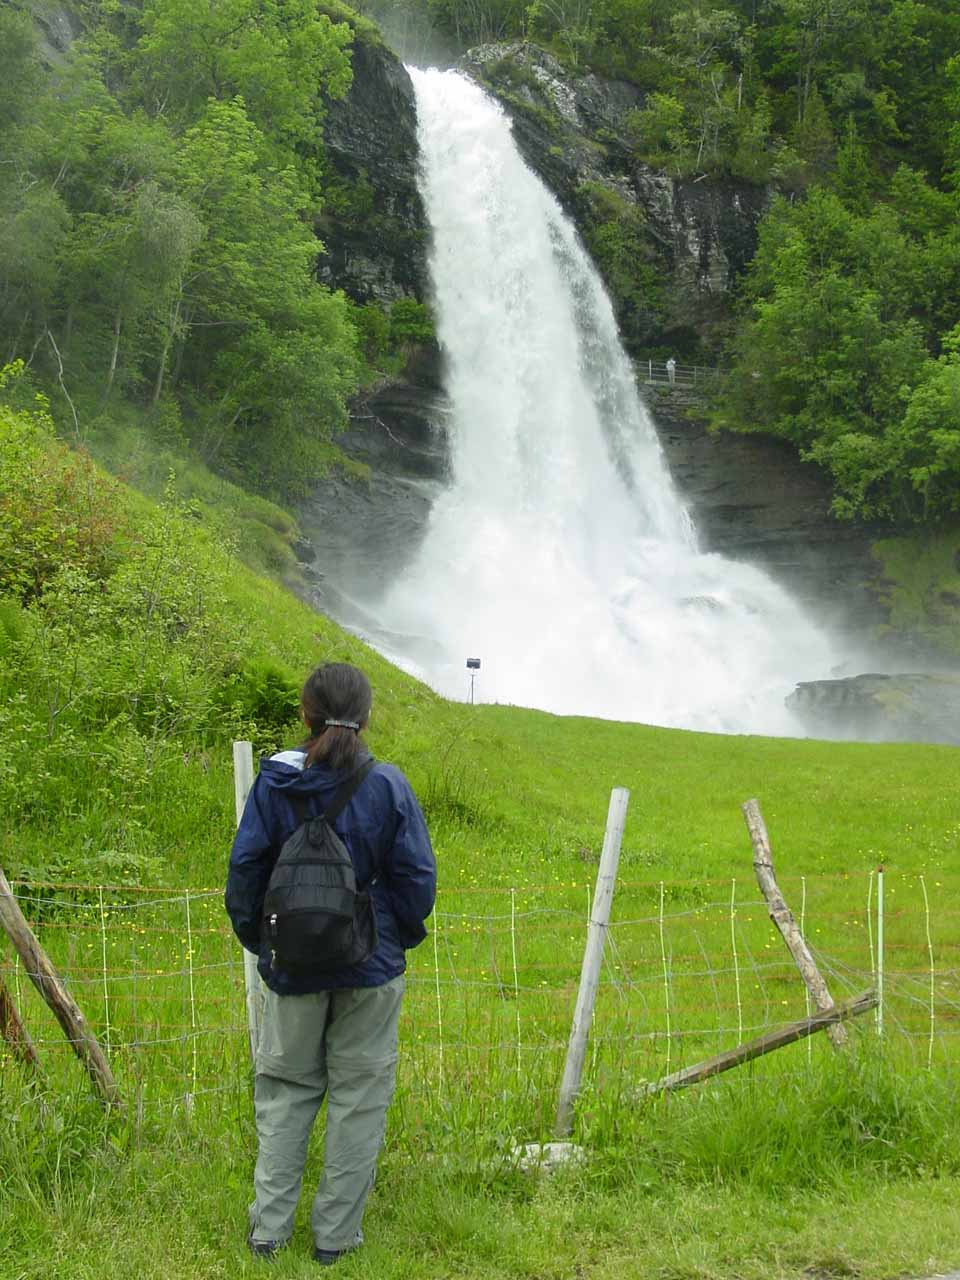 As soon as we got out of the car, here was Julie checking out Steinsdalsfossen